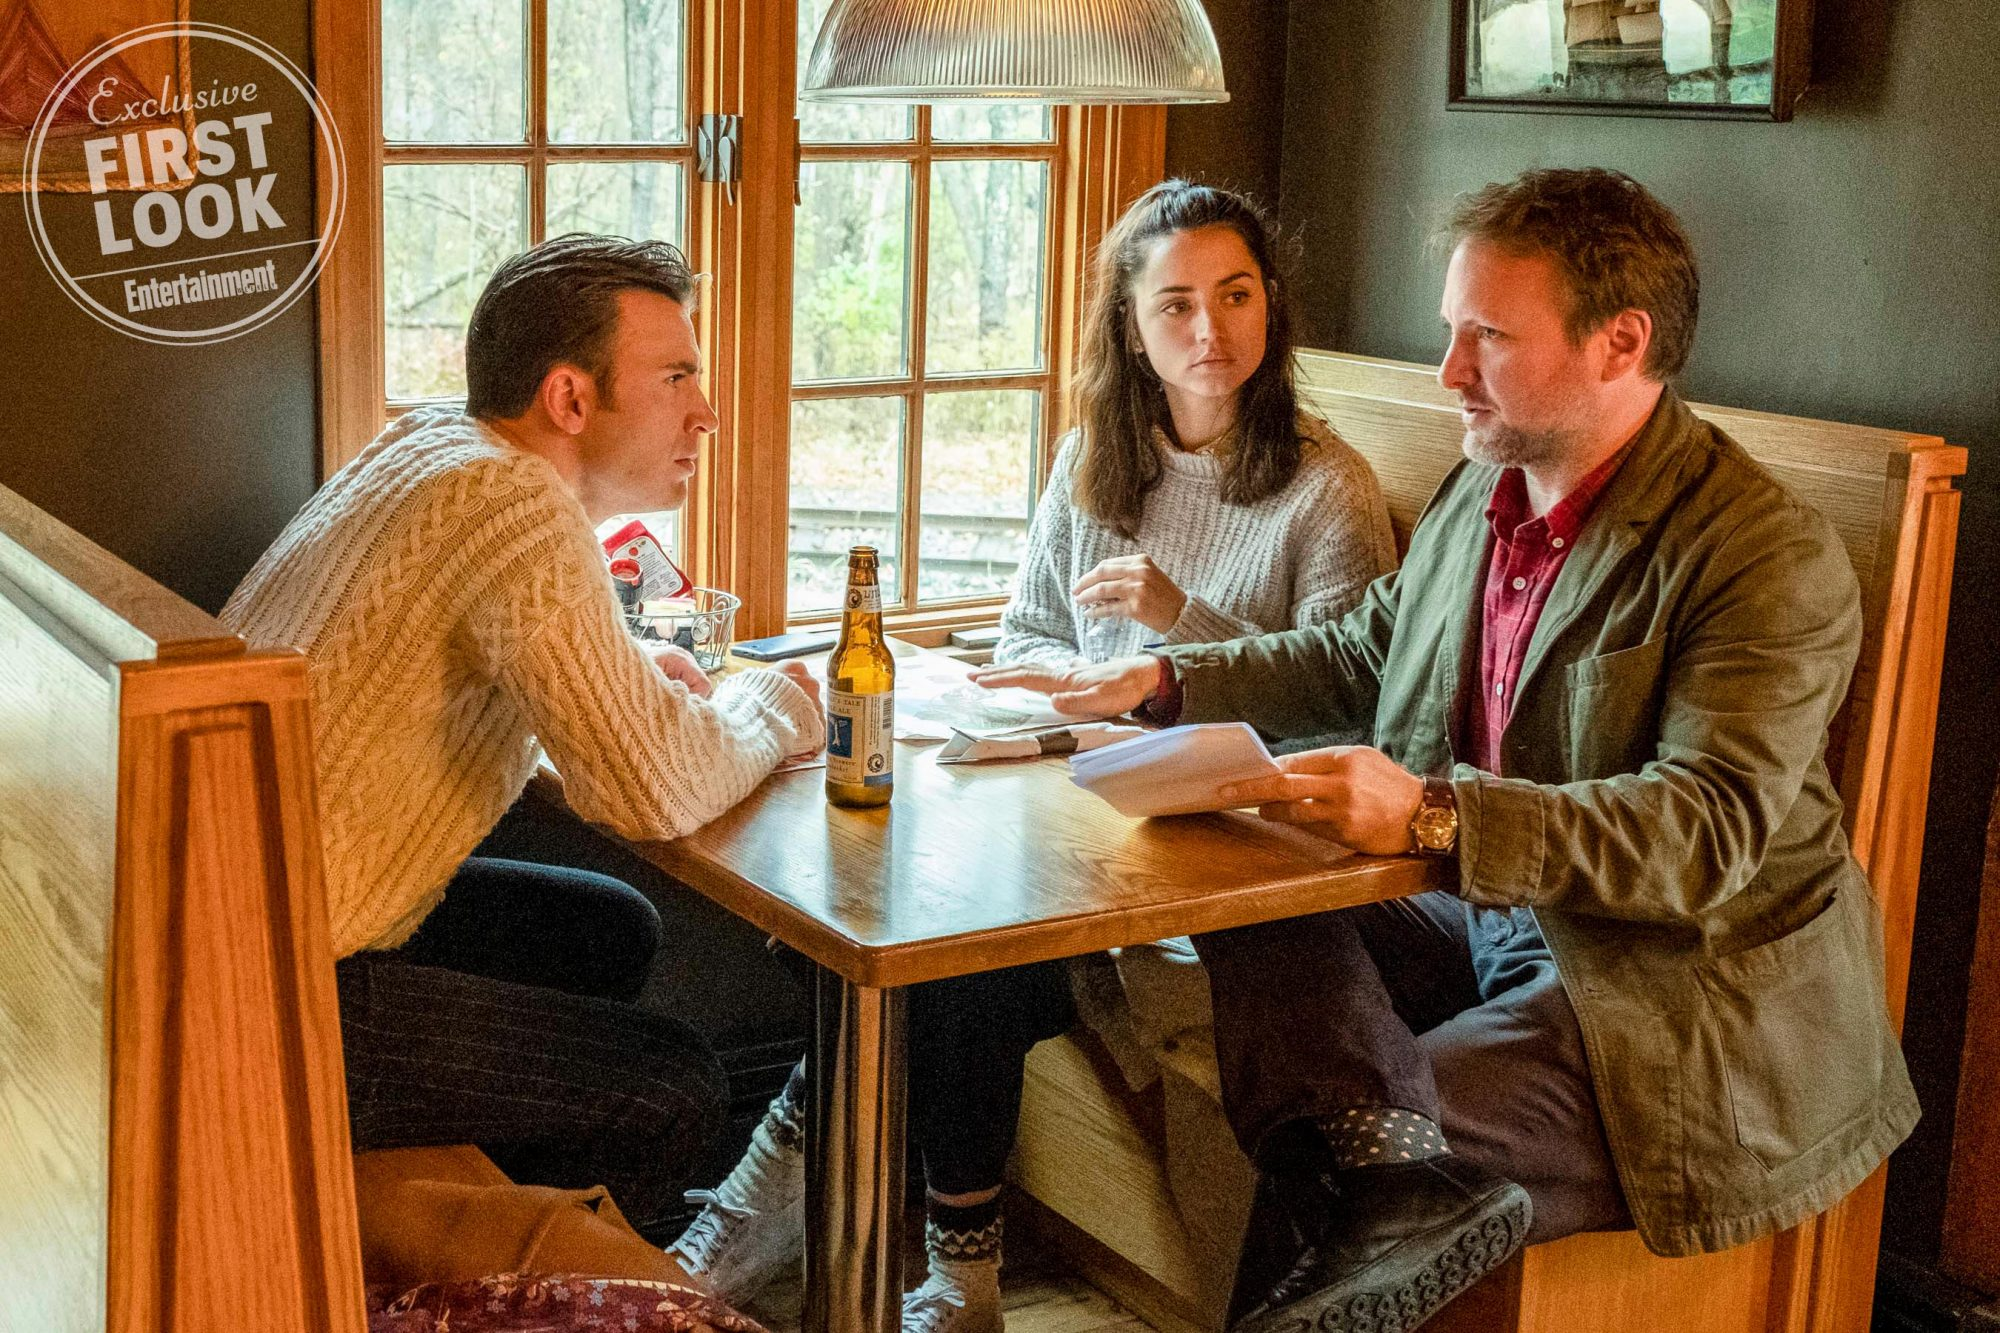 KNIVES OUT Chris Evans (left), Ana de Armas (center) and Director Rian Johnson on the set of KNIVES OUT. CR: Claire Folger/Lionsgate